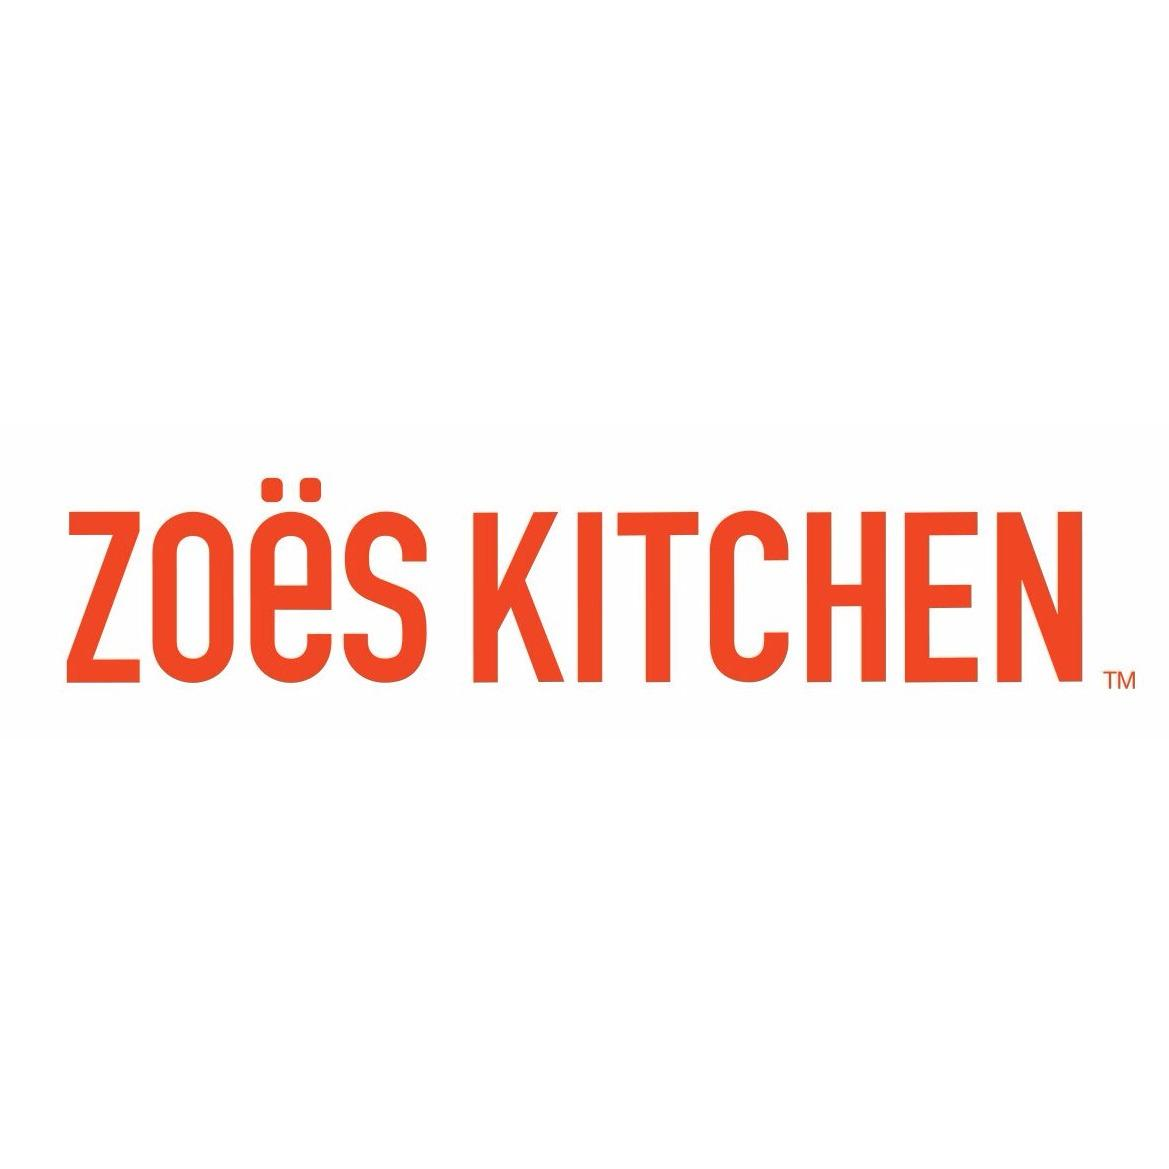 Zoes Kitchen image 13